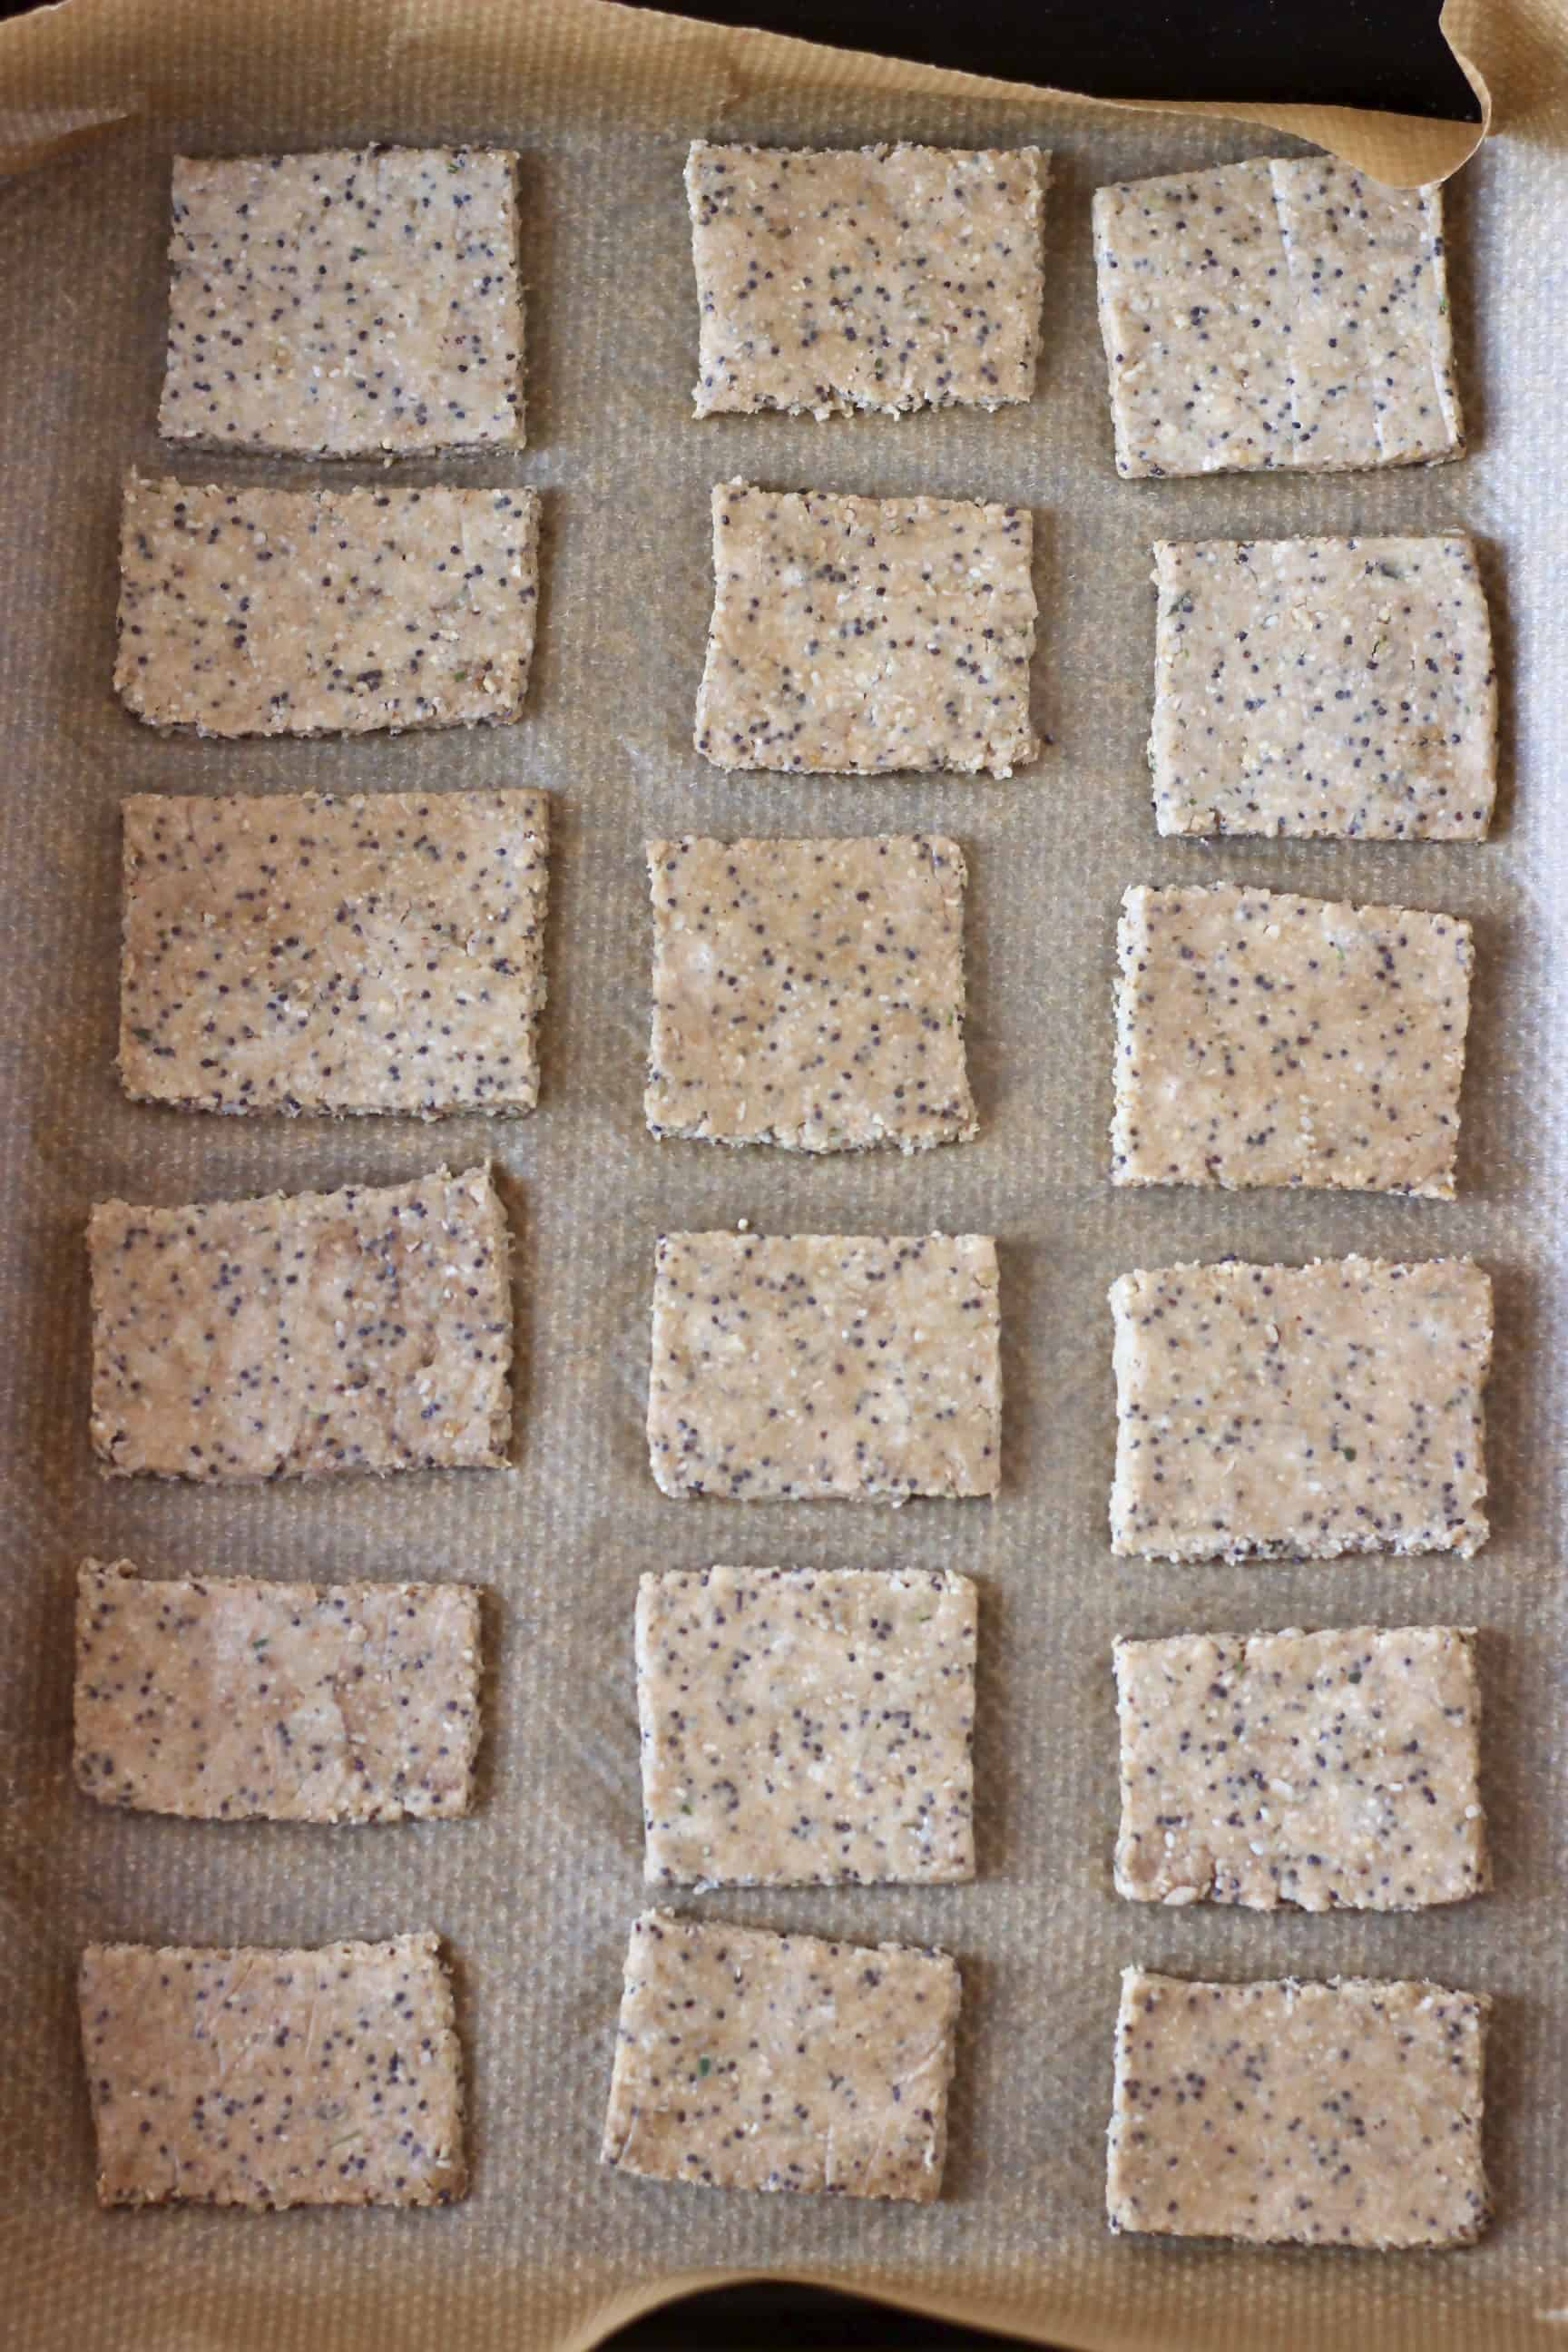 Eighteen square raw gluten-free vegan crackers on a baking tray lined with baking paper